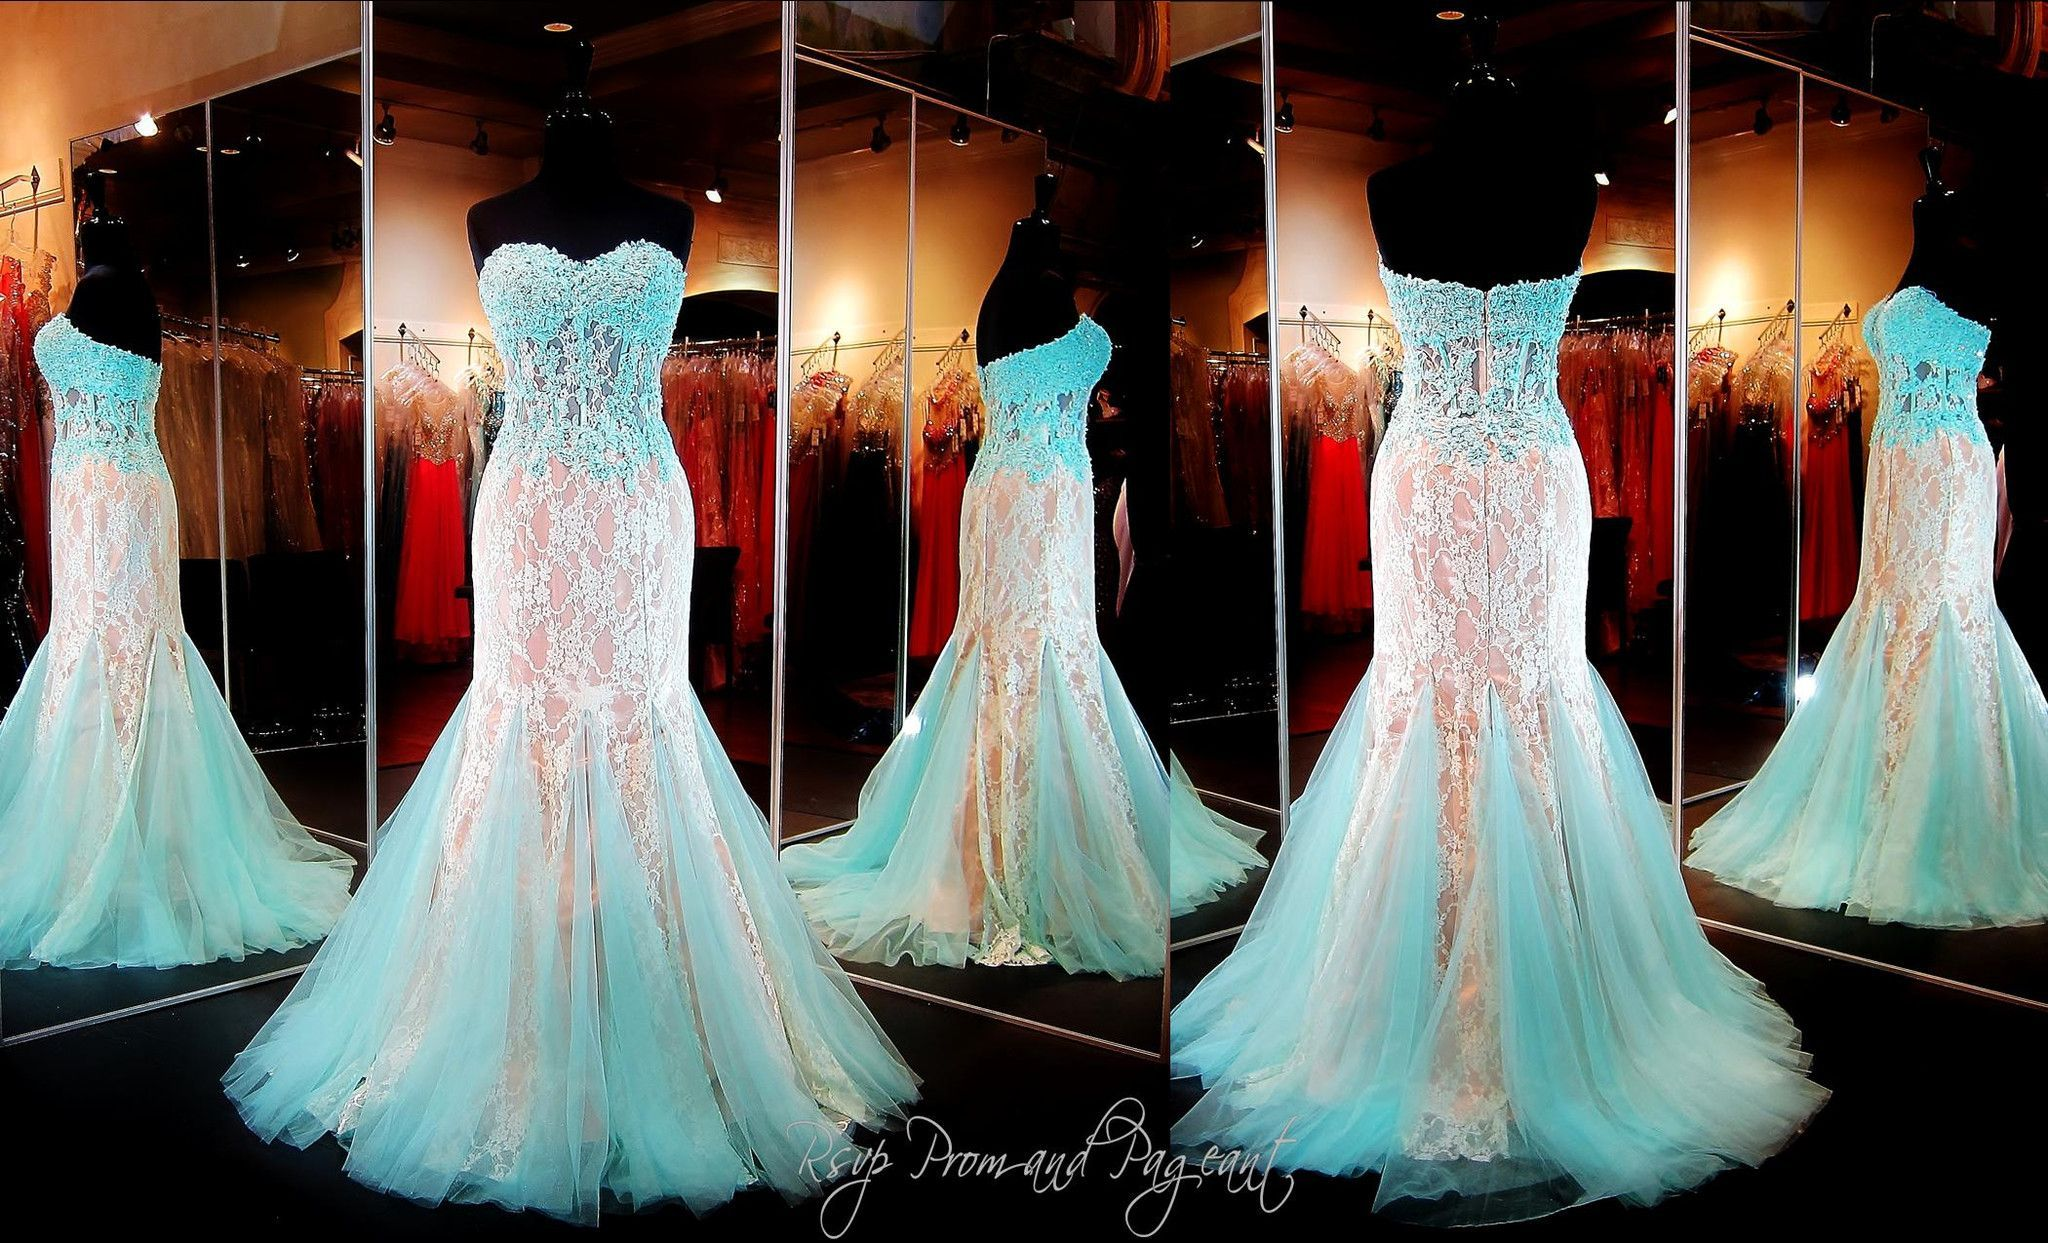 aqua-nude-lace-prom-dress-mermaid-sheer-midrift-115dj011600395 at ...